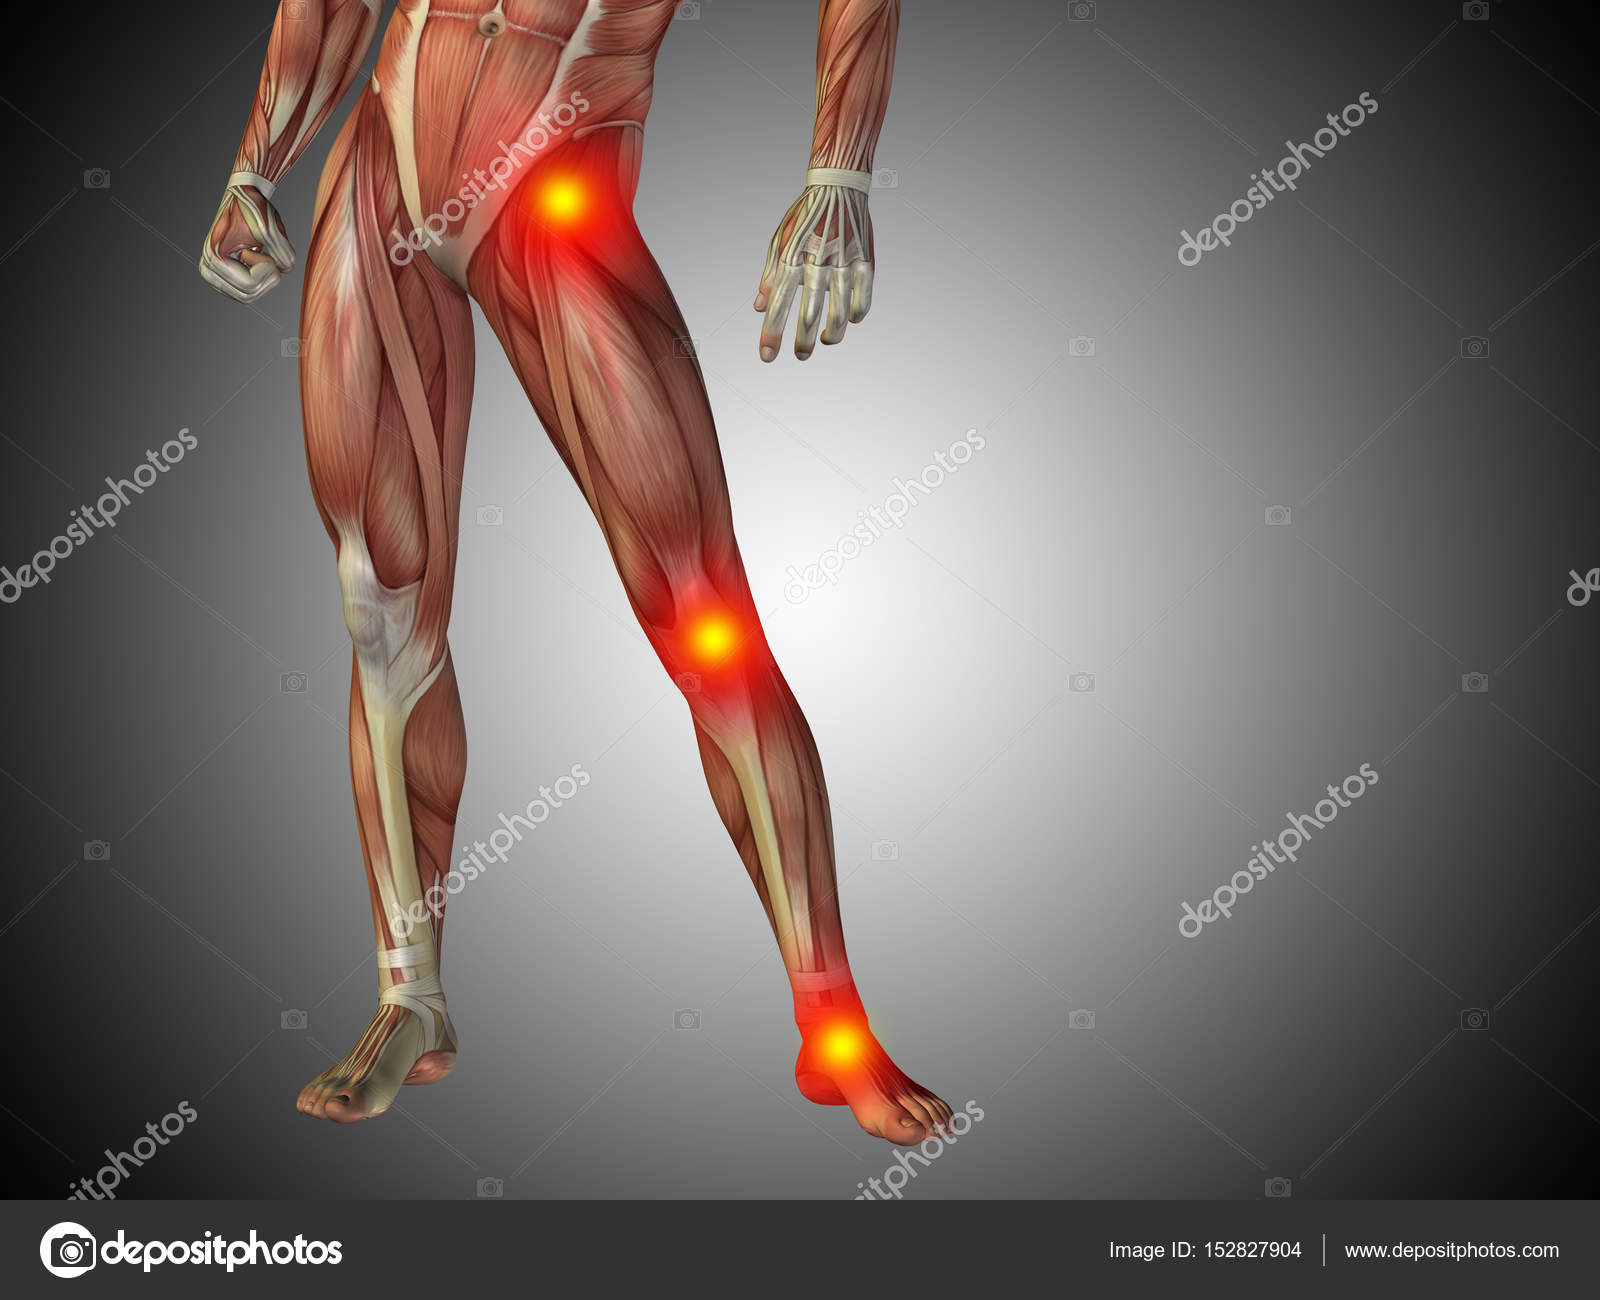 Human Lower Body Anatomy Stock Photo Design36 152827904